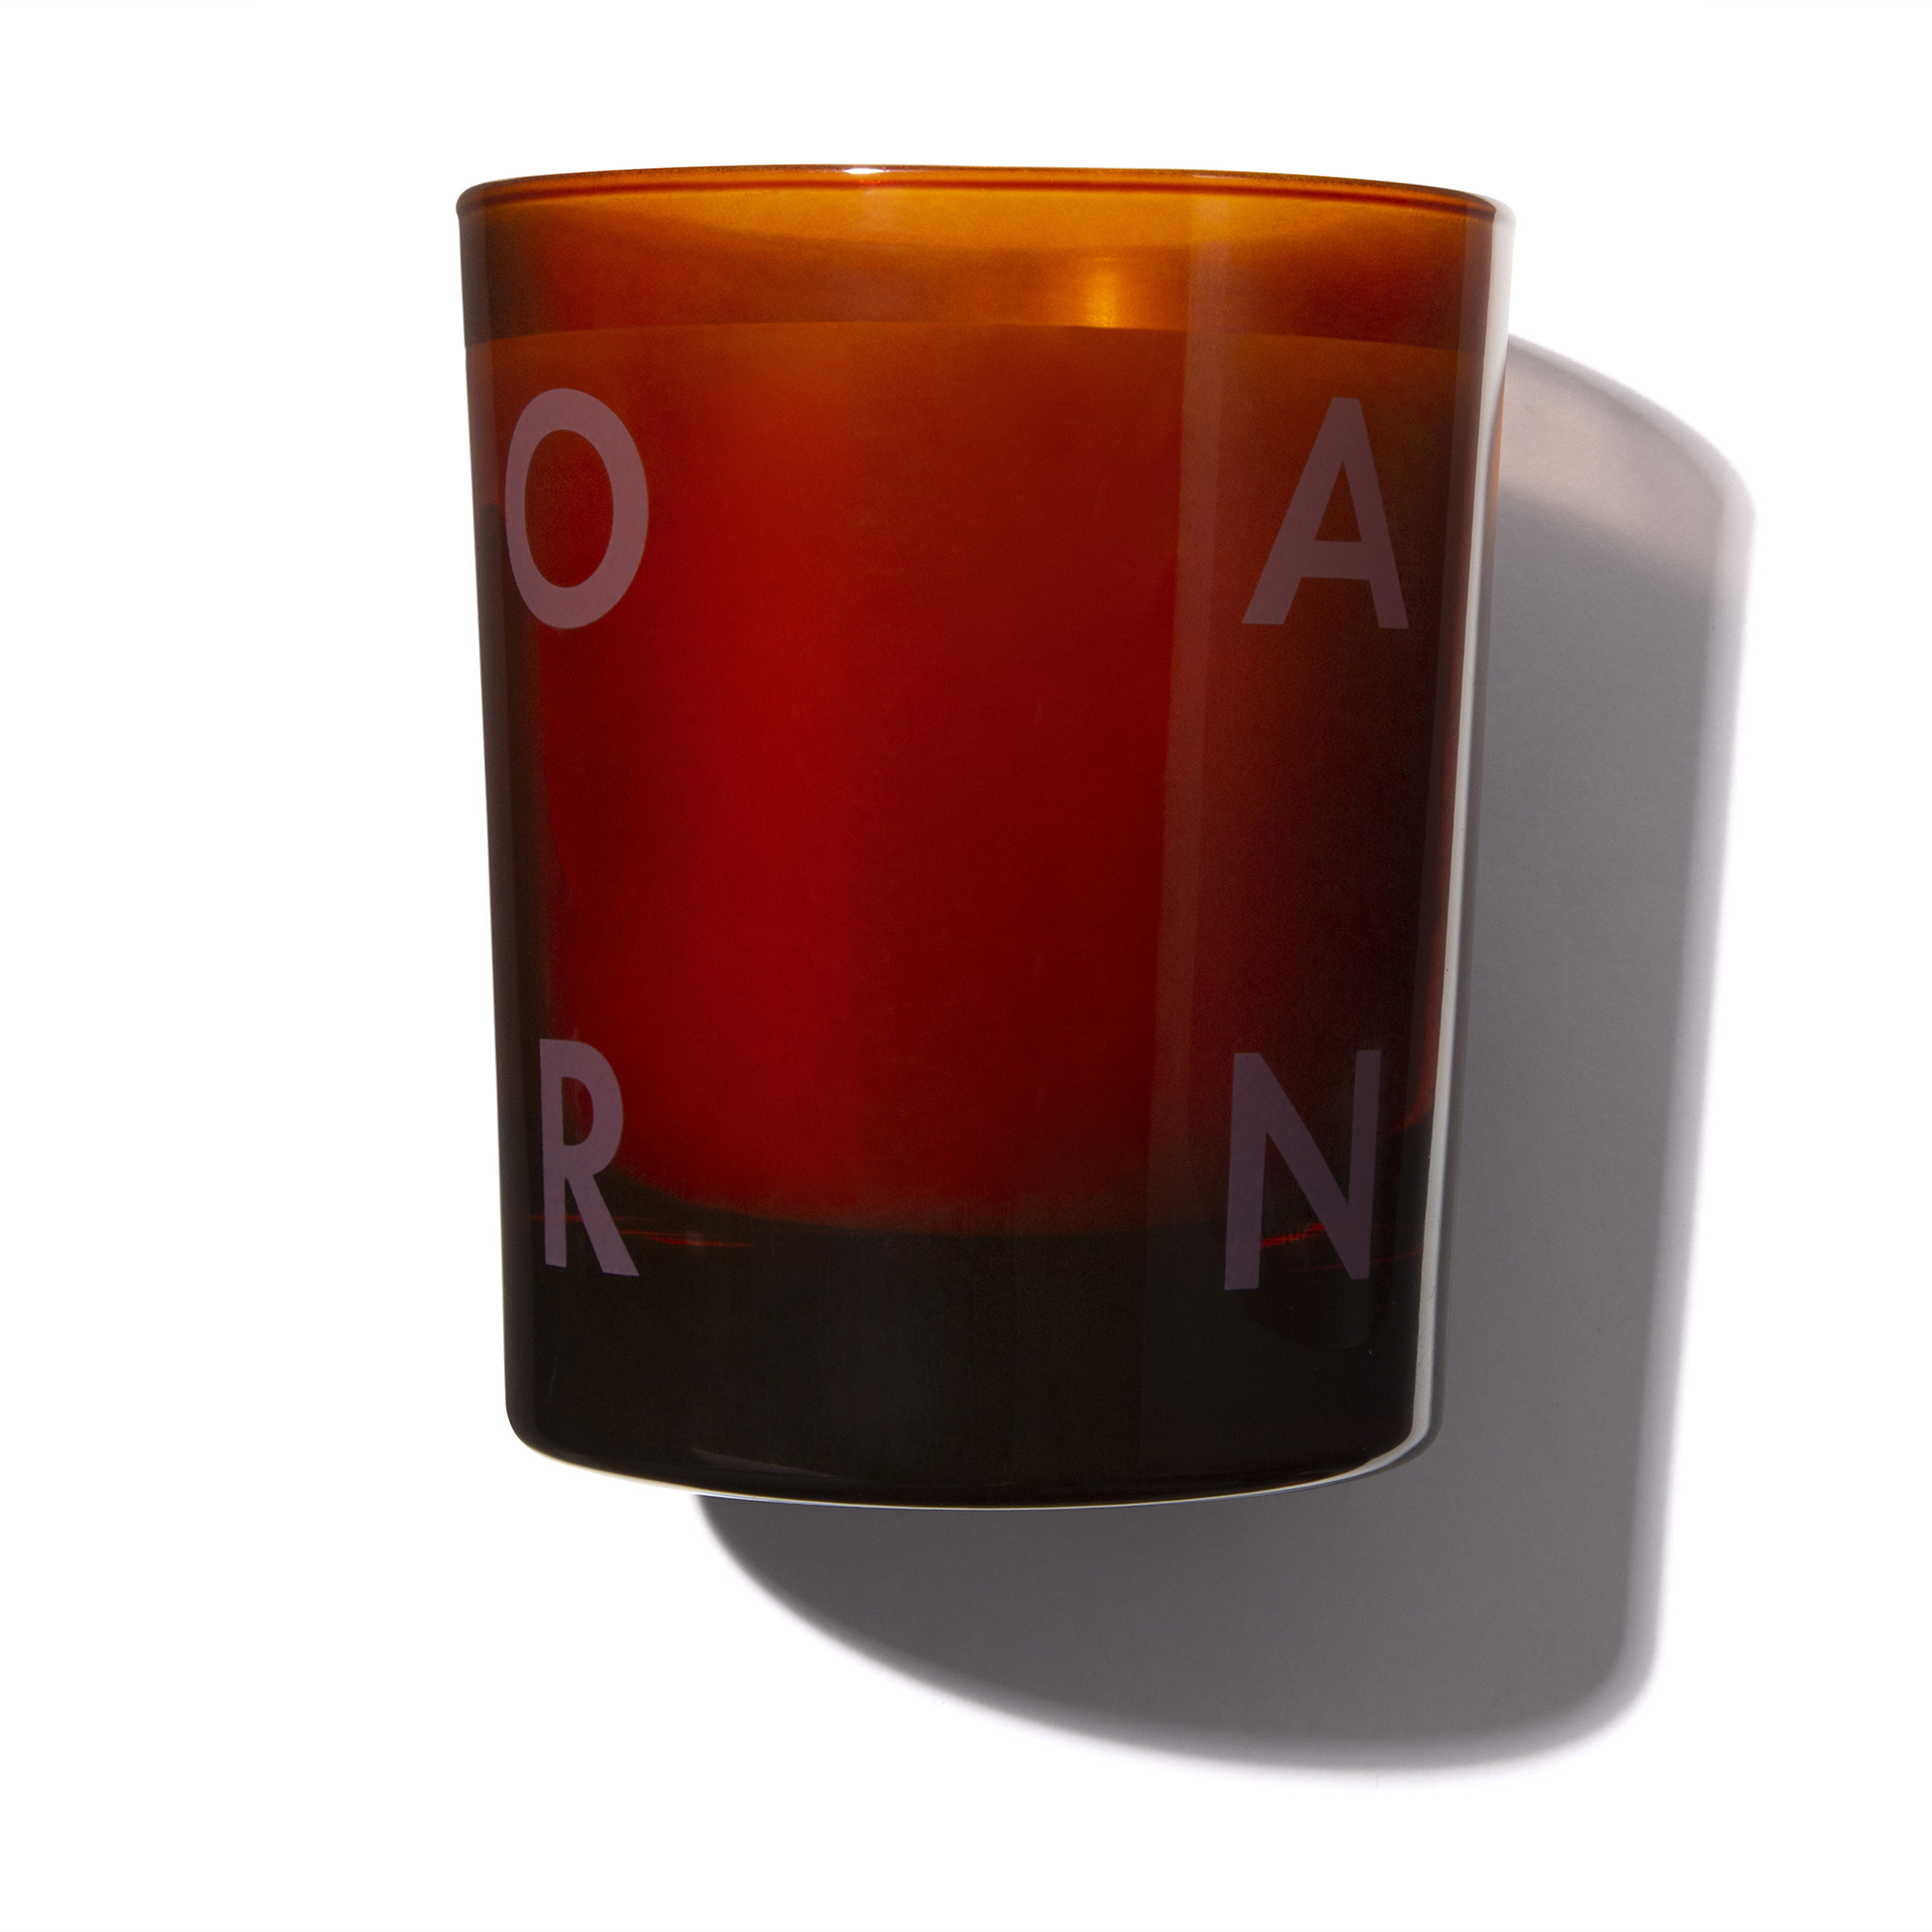 Bitter Orange & Blackcurrant Luxury Scented Candle by Beauty Pie